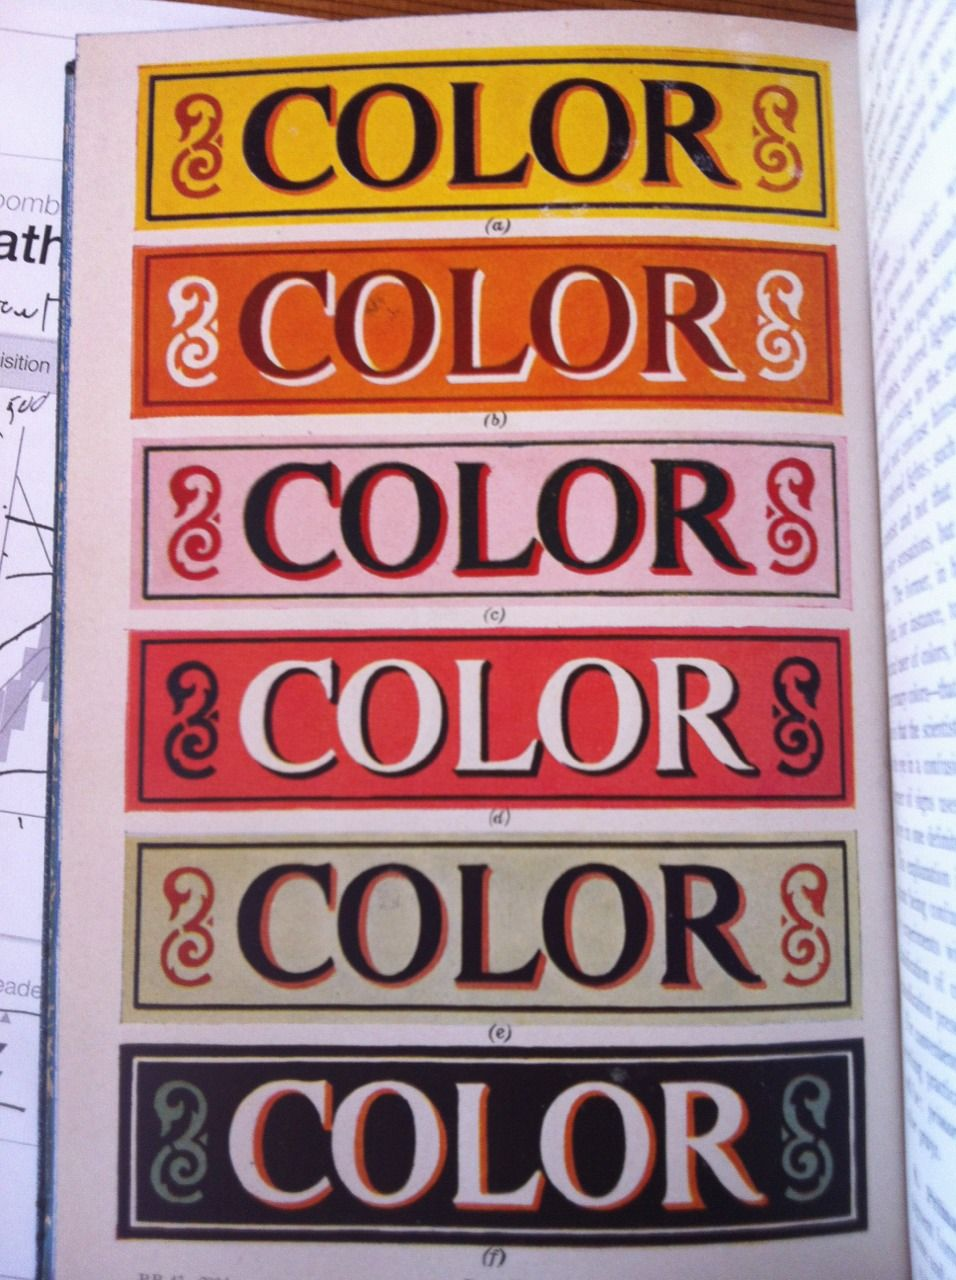 Color: from show card designing color schemes by E.L. Koller | Misc ...